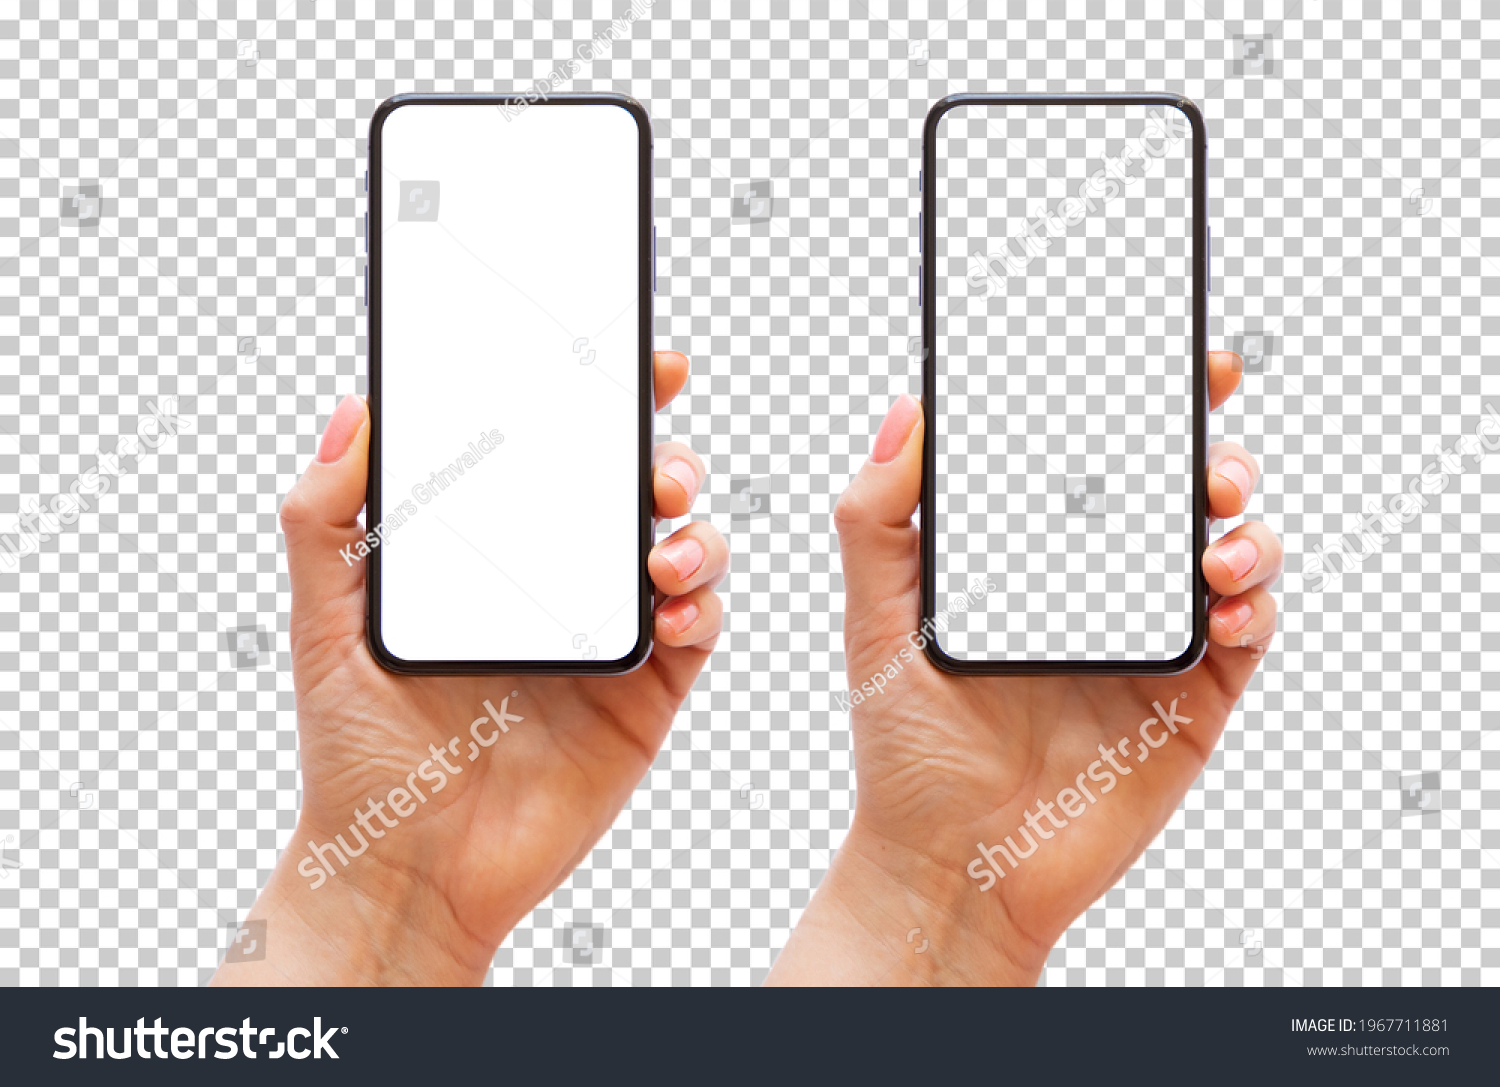 Mobile phone in hand, transparent background pattern #1967711881